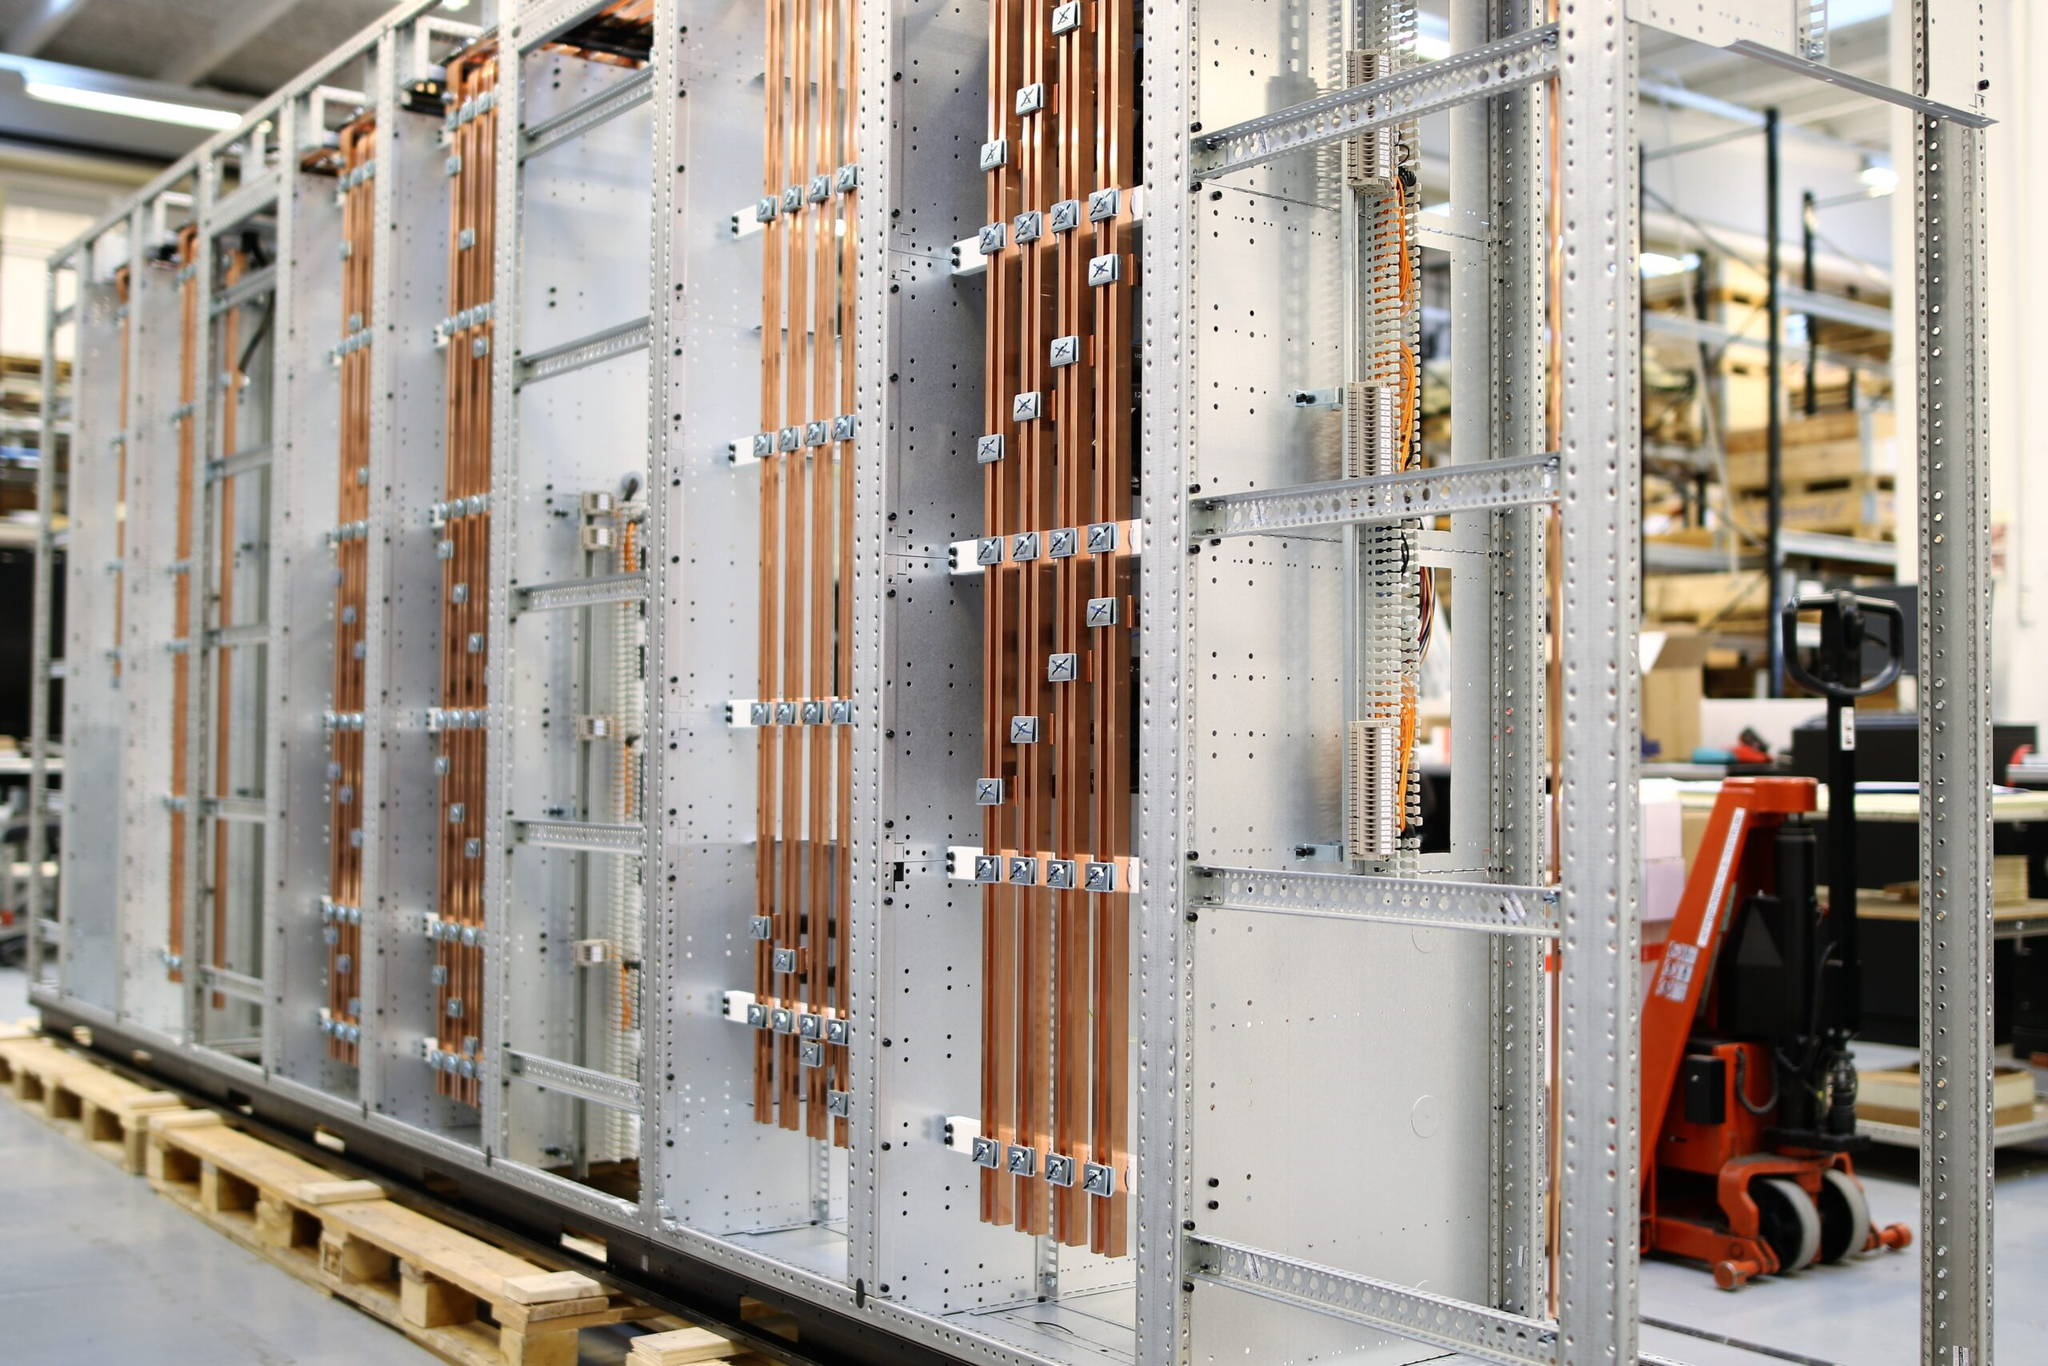 Logstrup is a manufacturer of Switchgear components such as Cobber components in the electrical switchboards